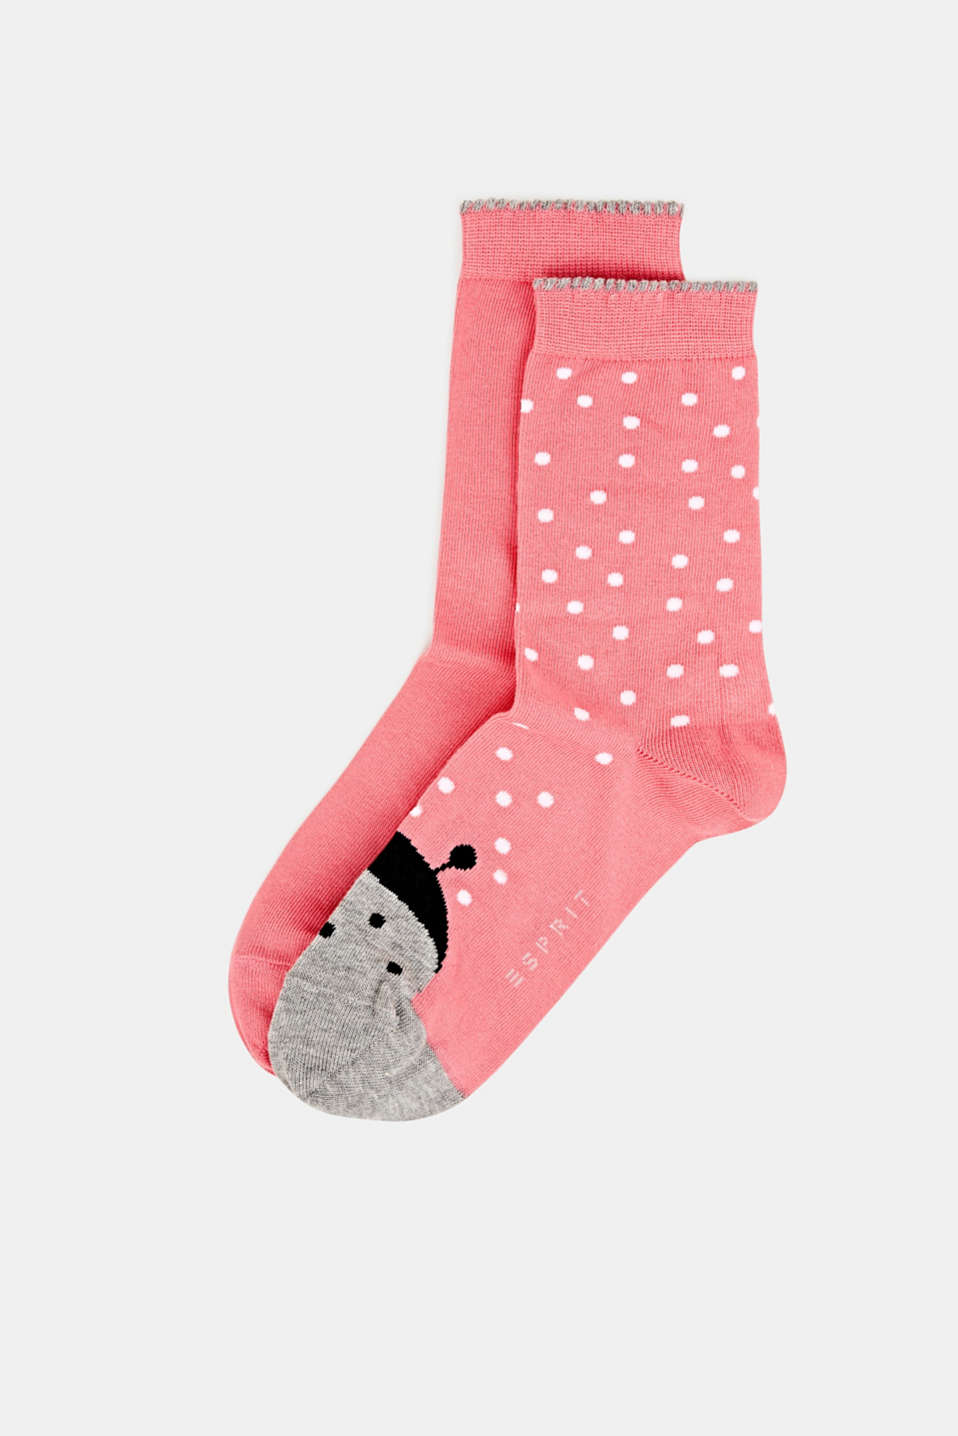 Double pack of socks, plain and with a ladybird motif, FUCHSIA, detail image number 0